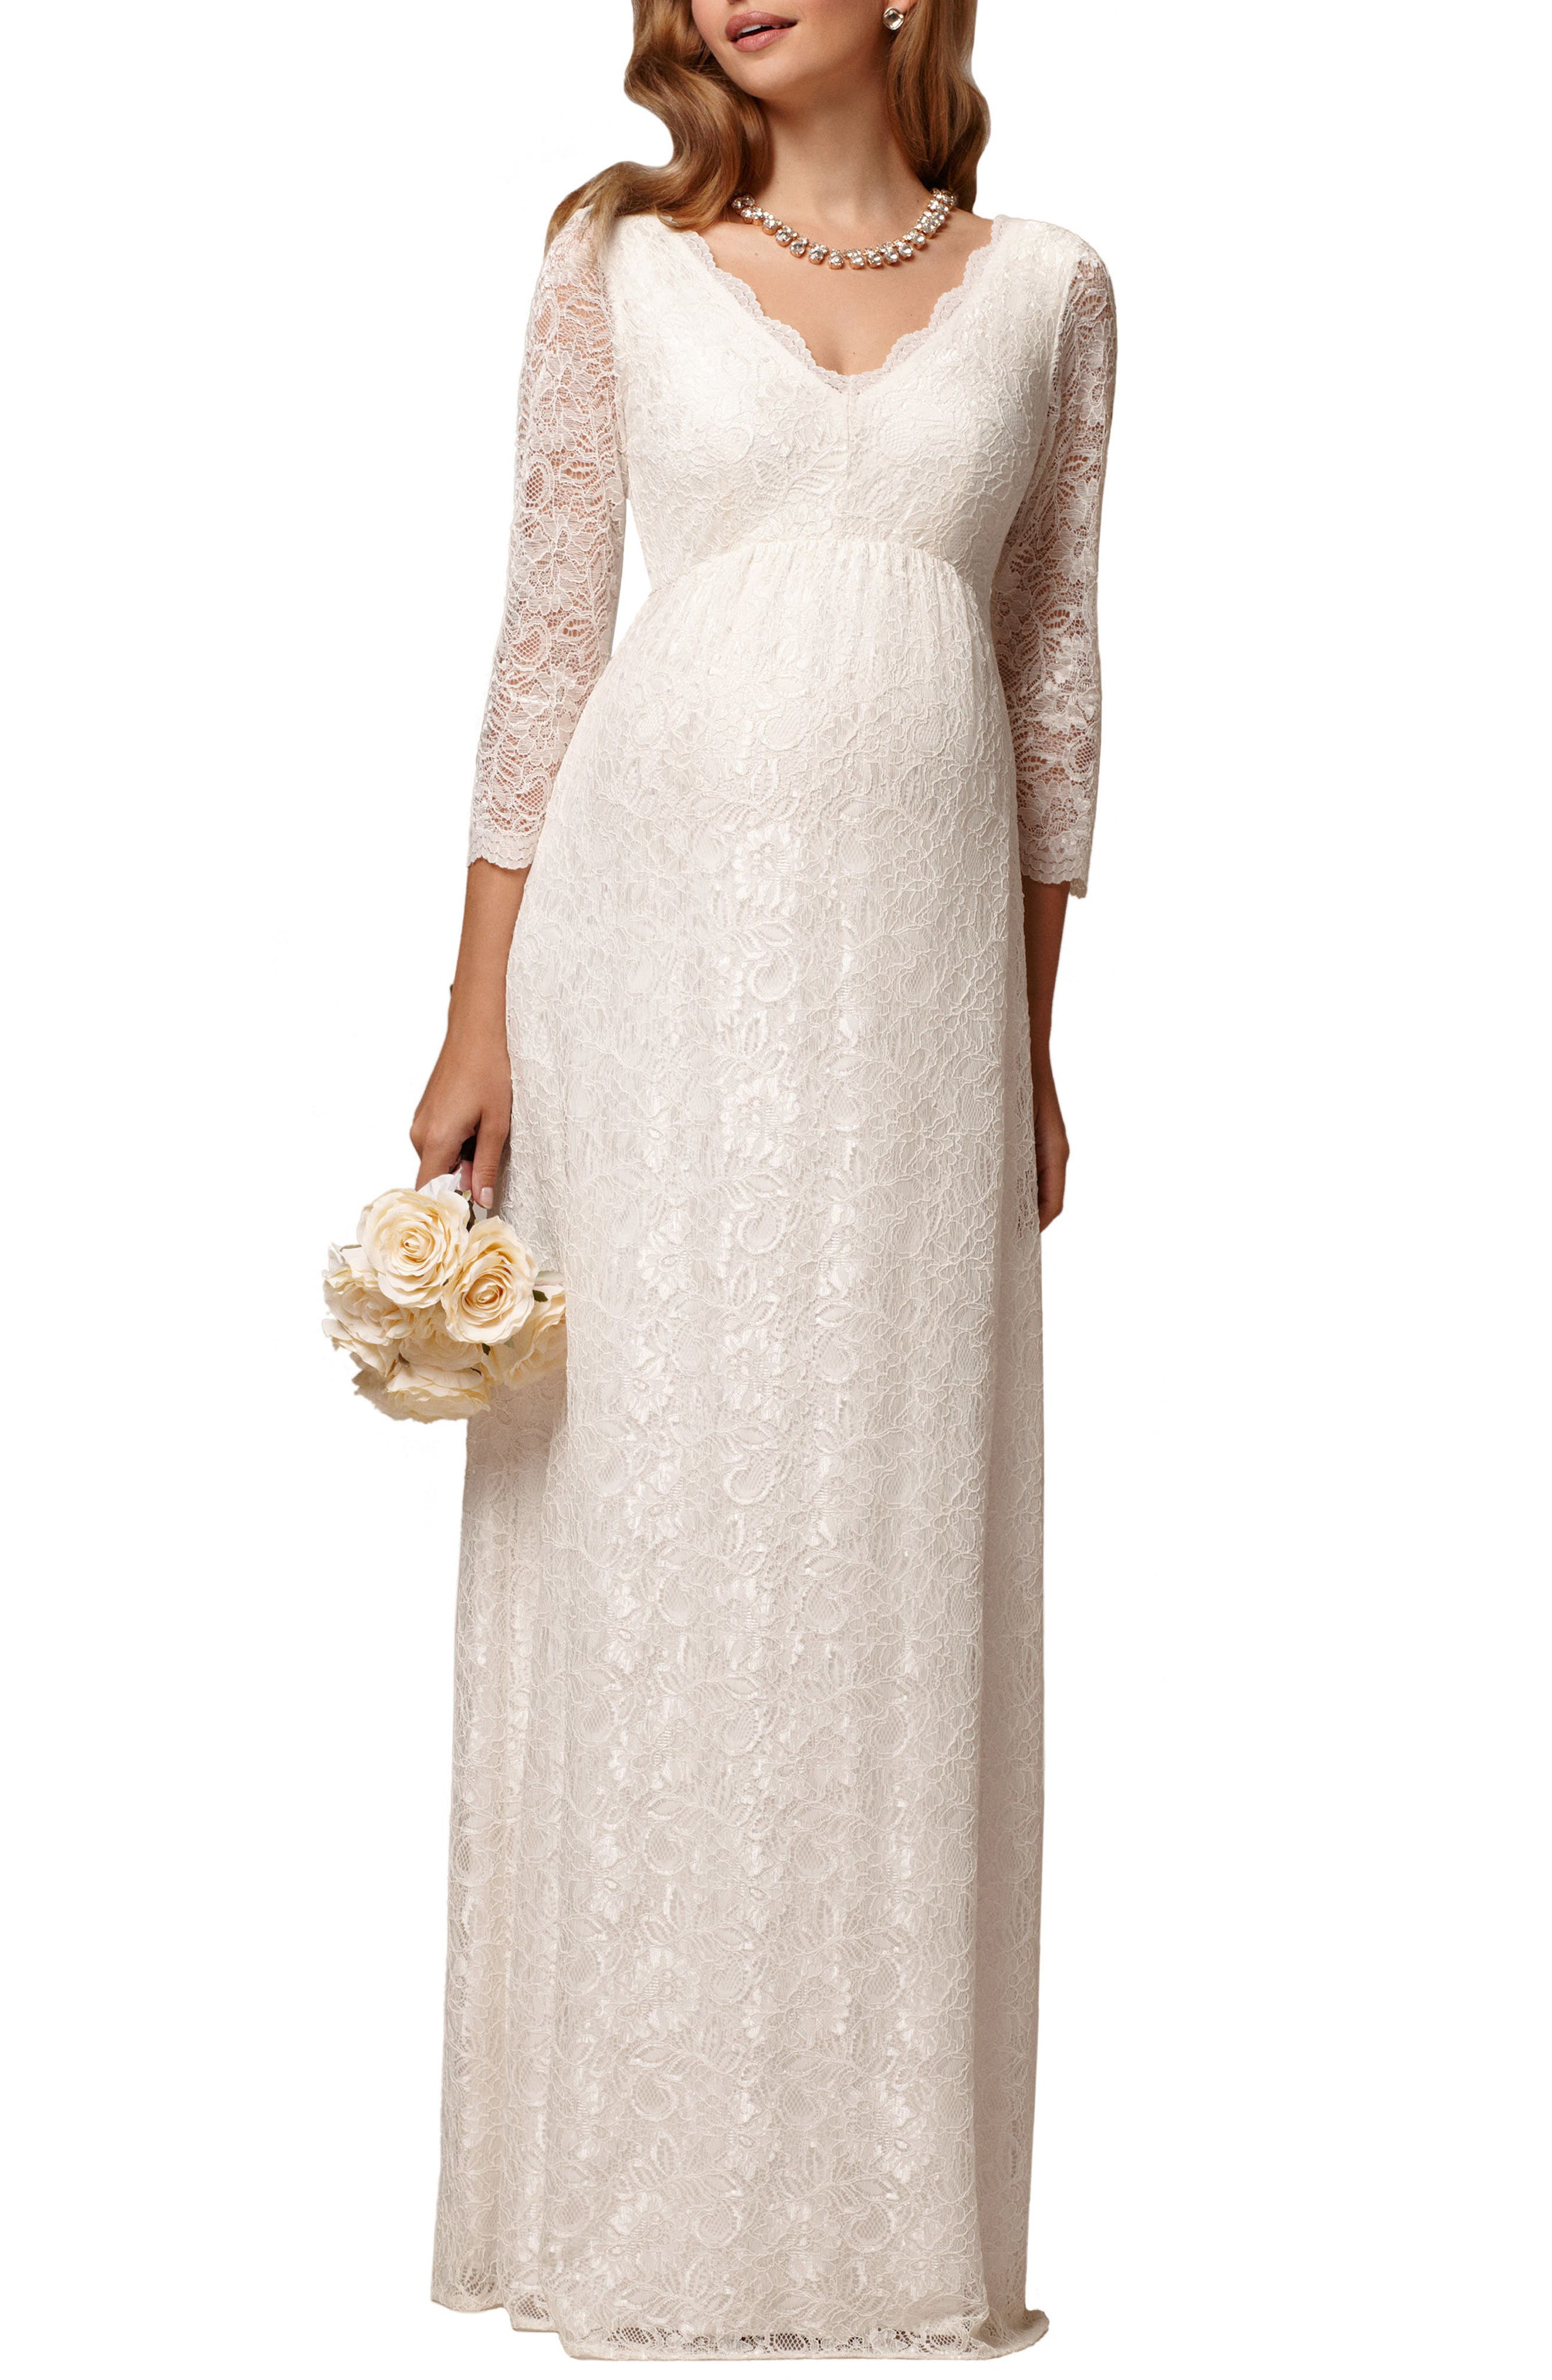 TIFFANY ROSE Chloe Lace Maternity Gown, Main, color, IVORY